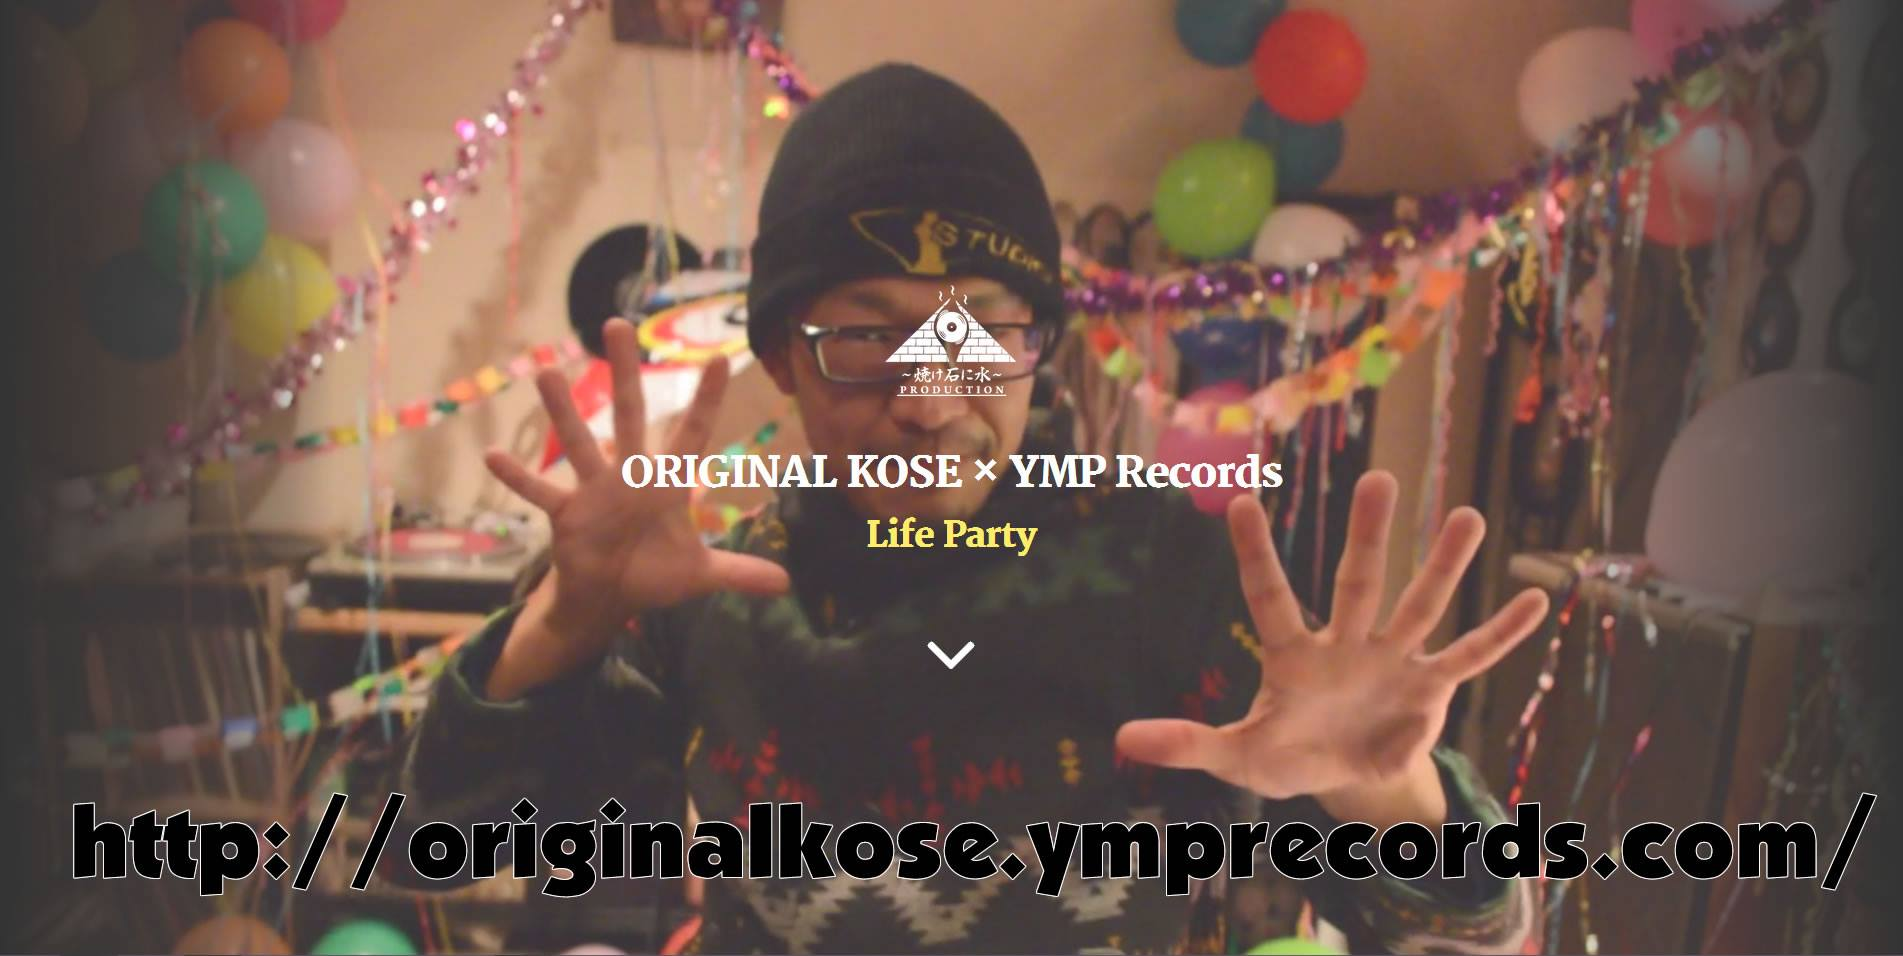 ymprecords